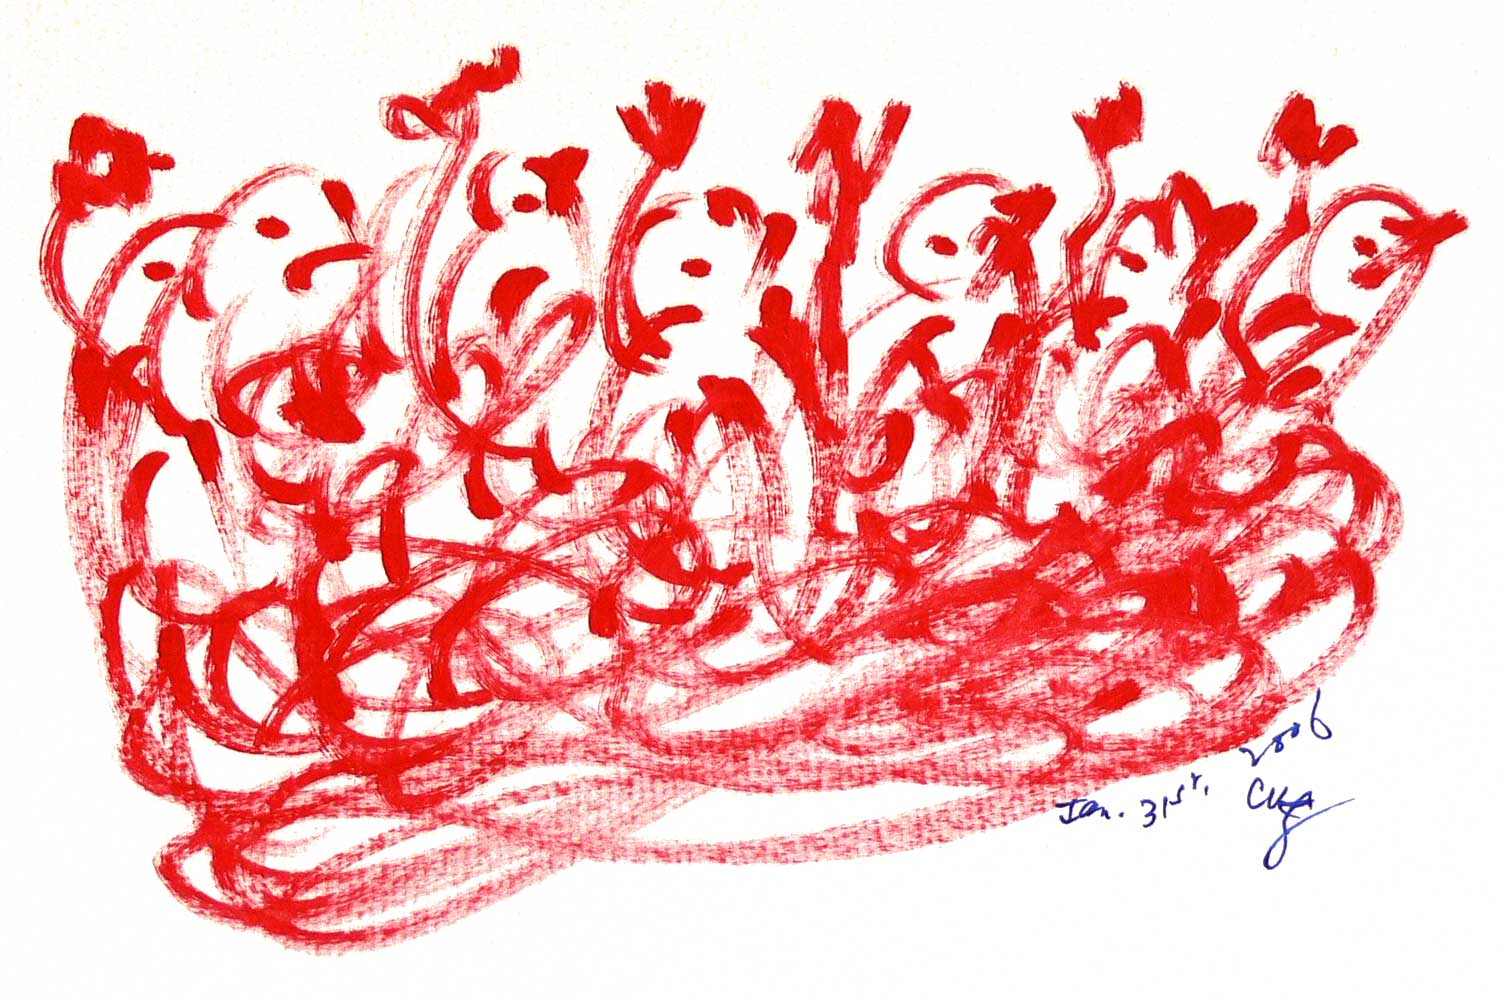 Bird-Drawing-by-Sri-Chinmoy-31-1-2006-5